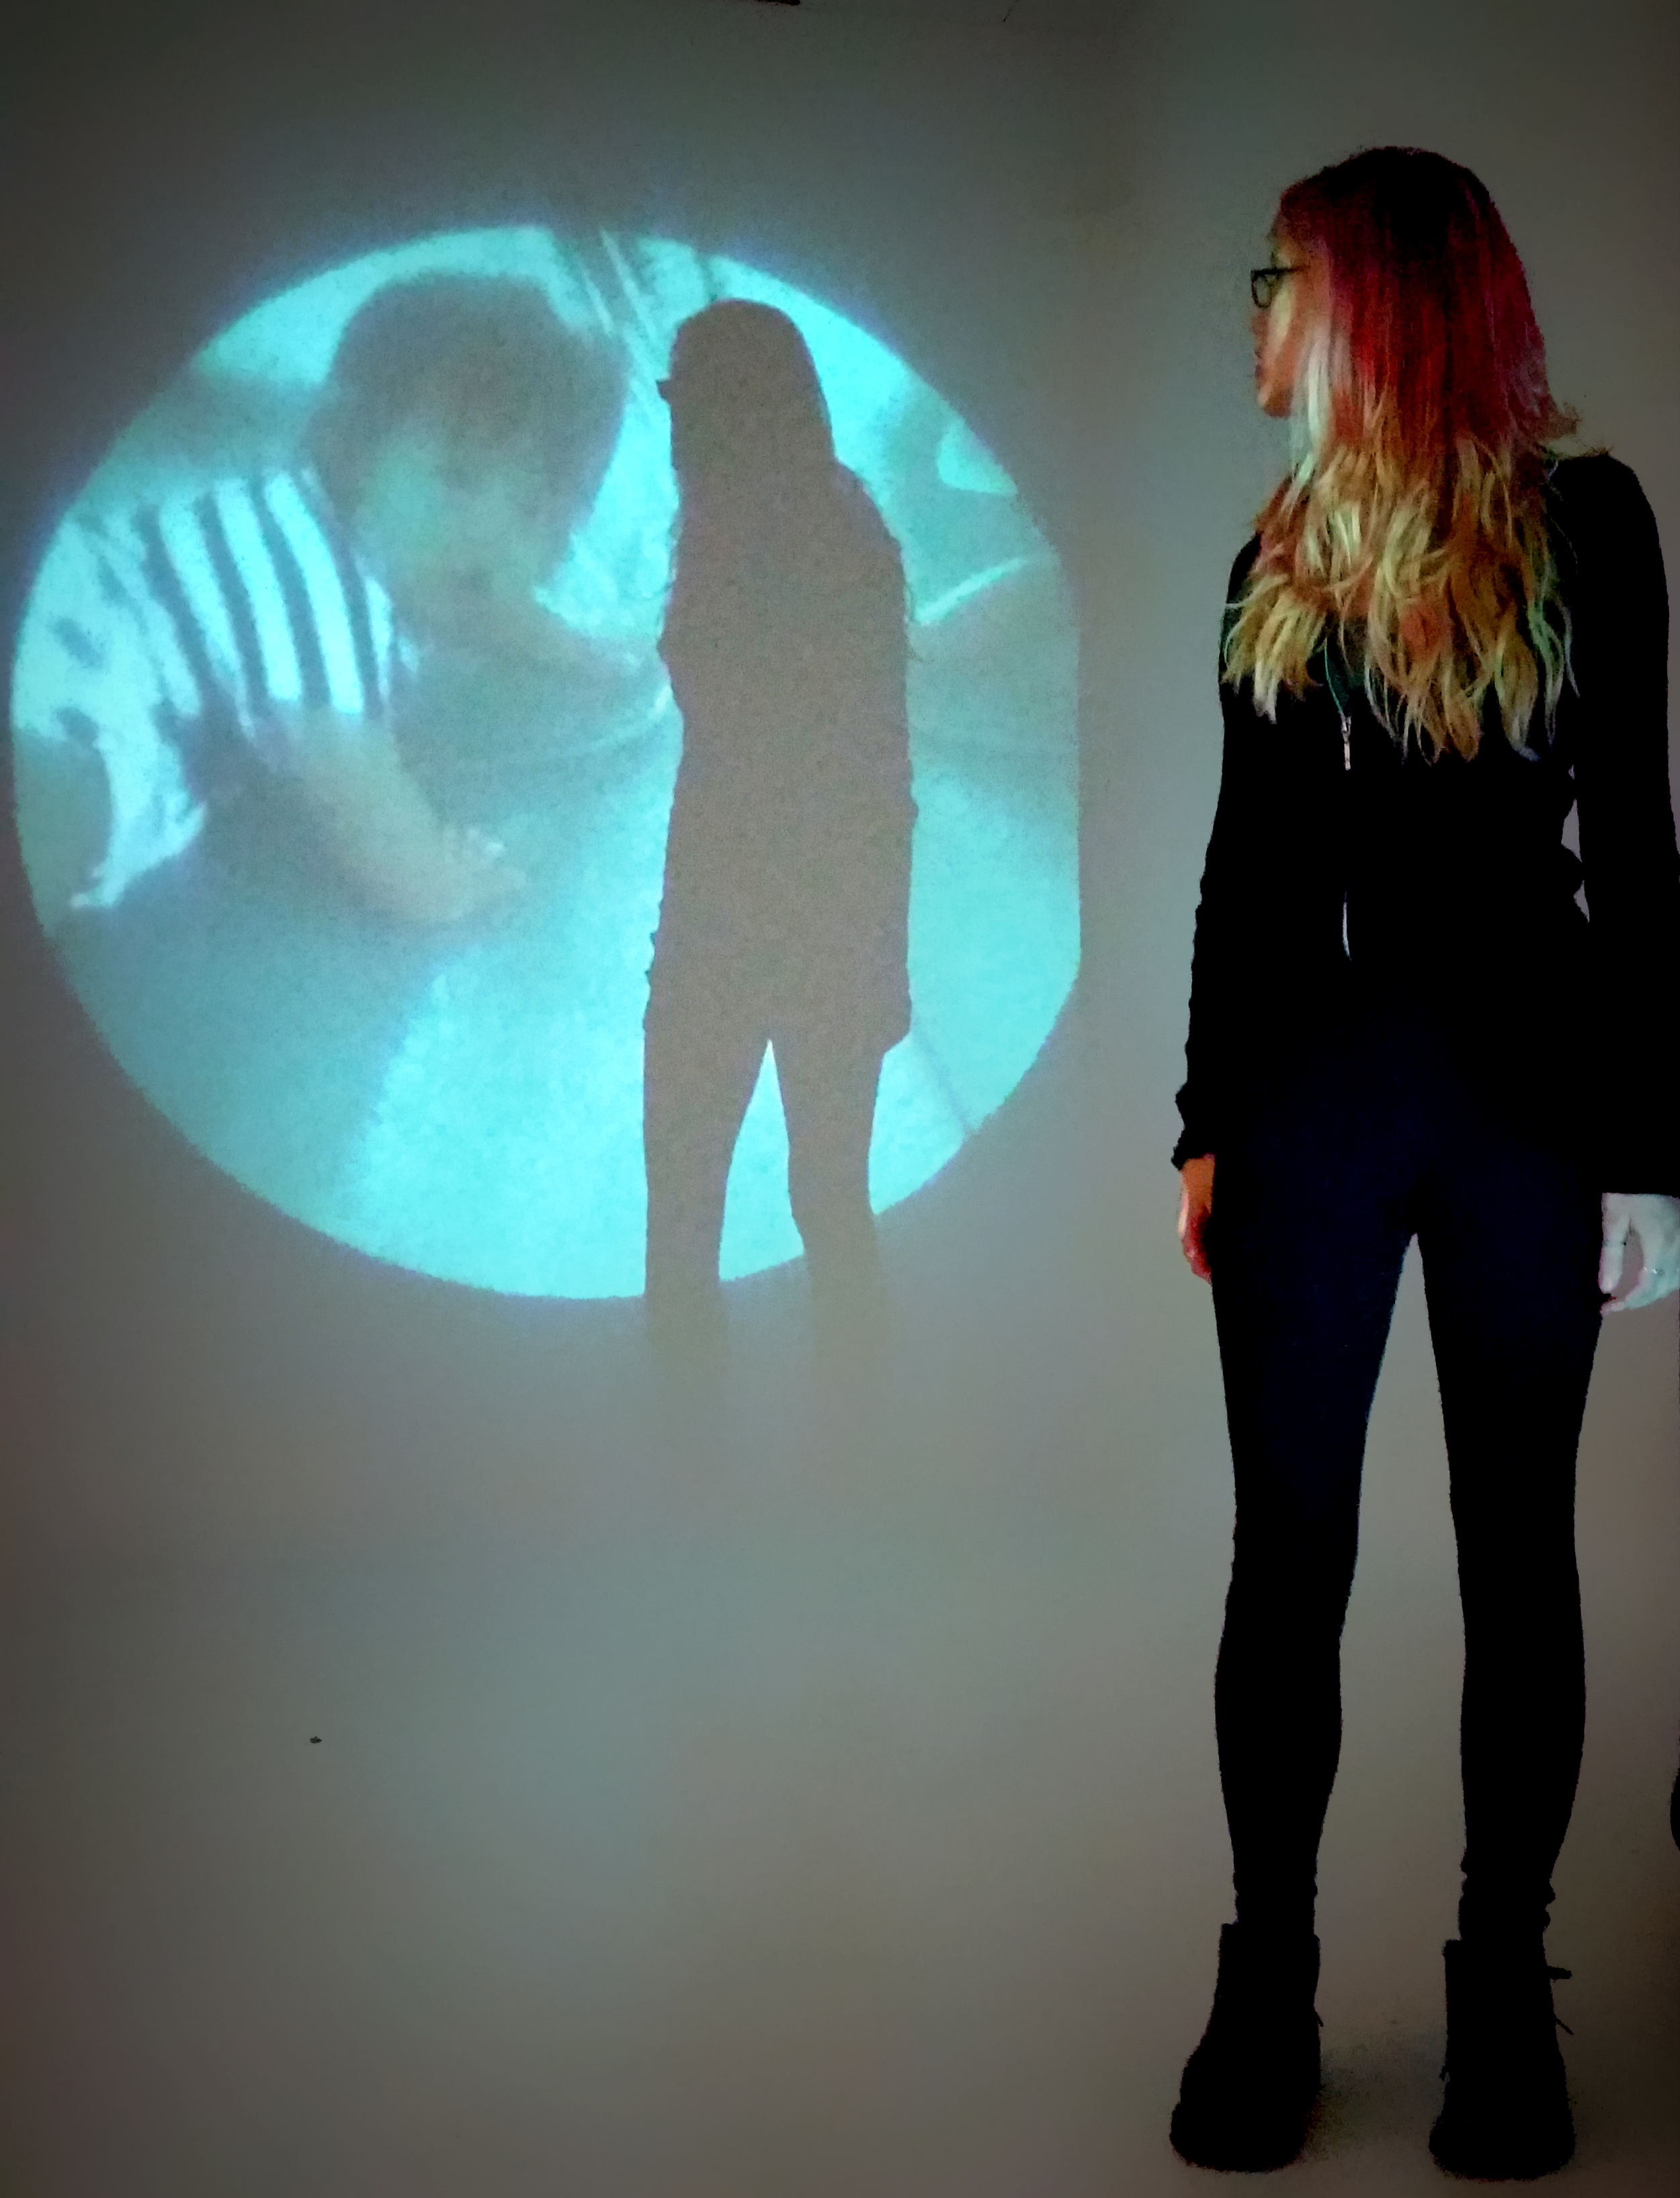 SelfPortraitwithProjection.jpg